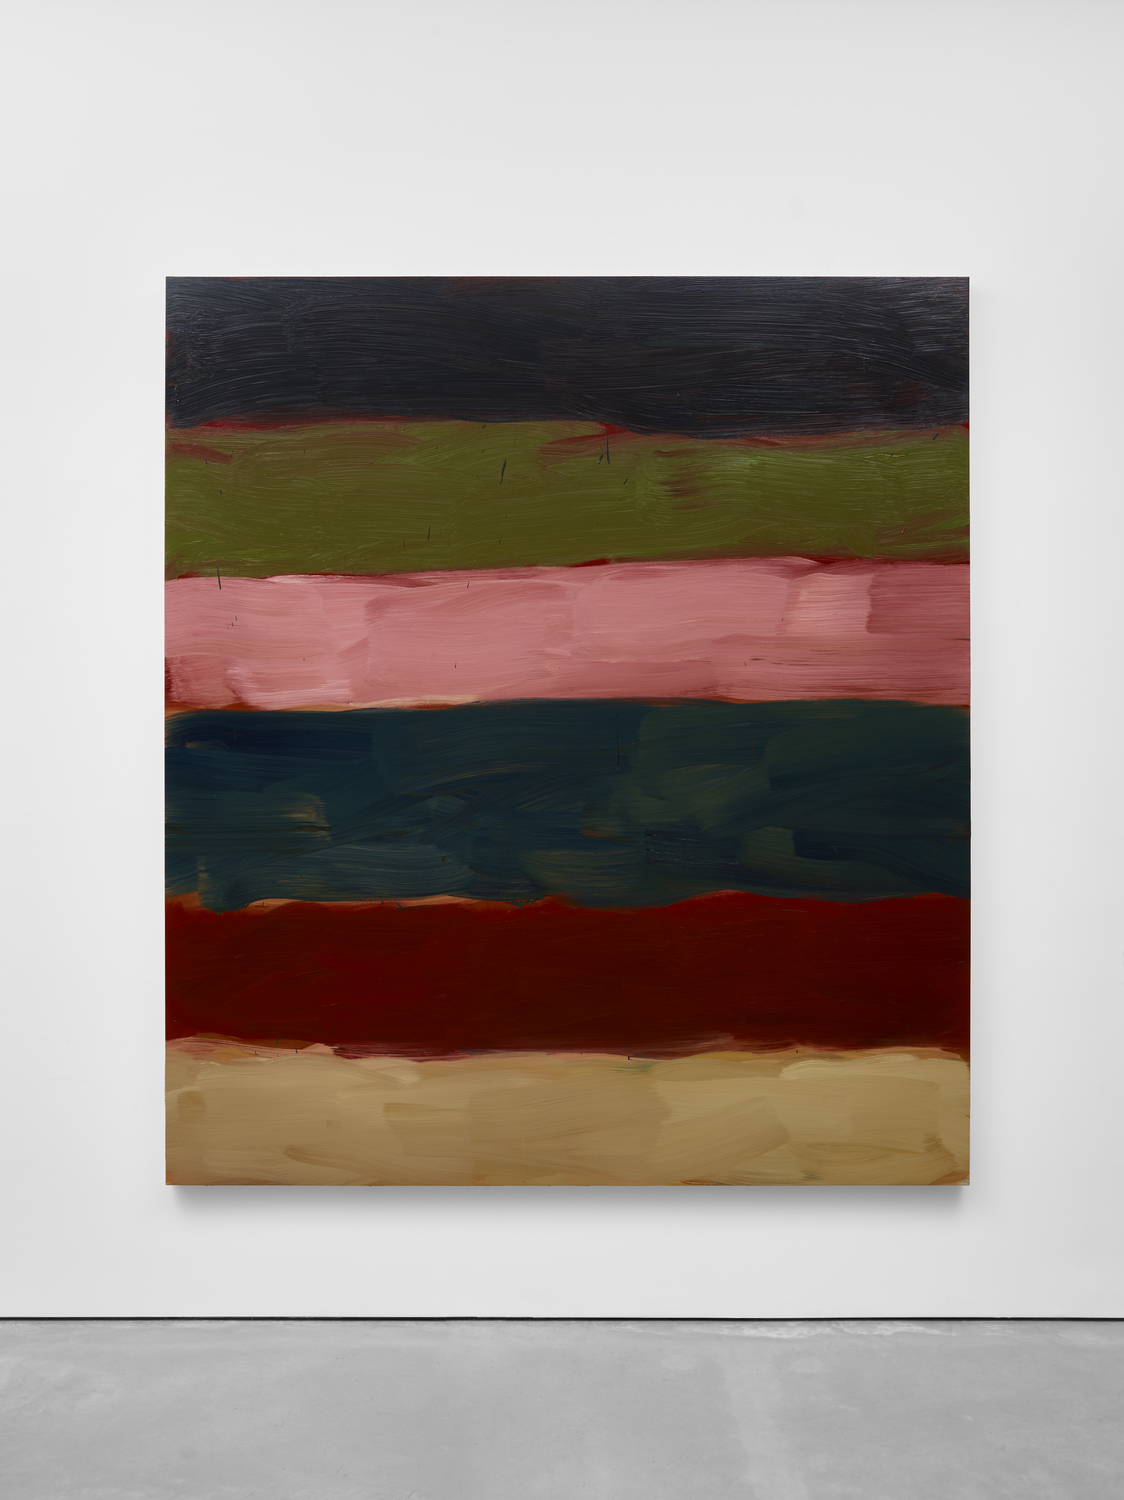 Sean Scully Landline That Pink, 2017 Oil on aluminum 215.9 x 190.5 x 5.1 cm 85 x 75 x 2 in © Sean Scully. Courtesy Lisson Gallery